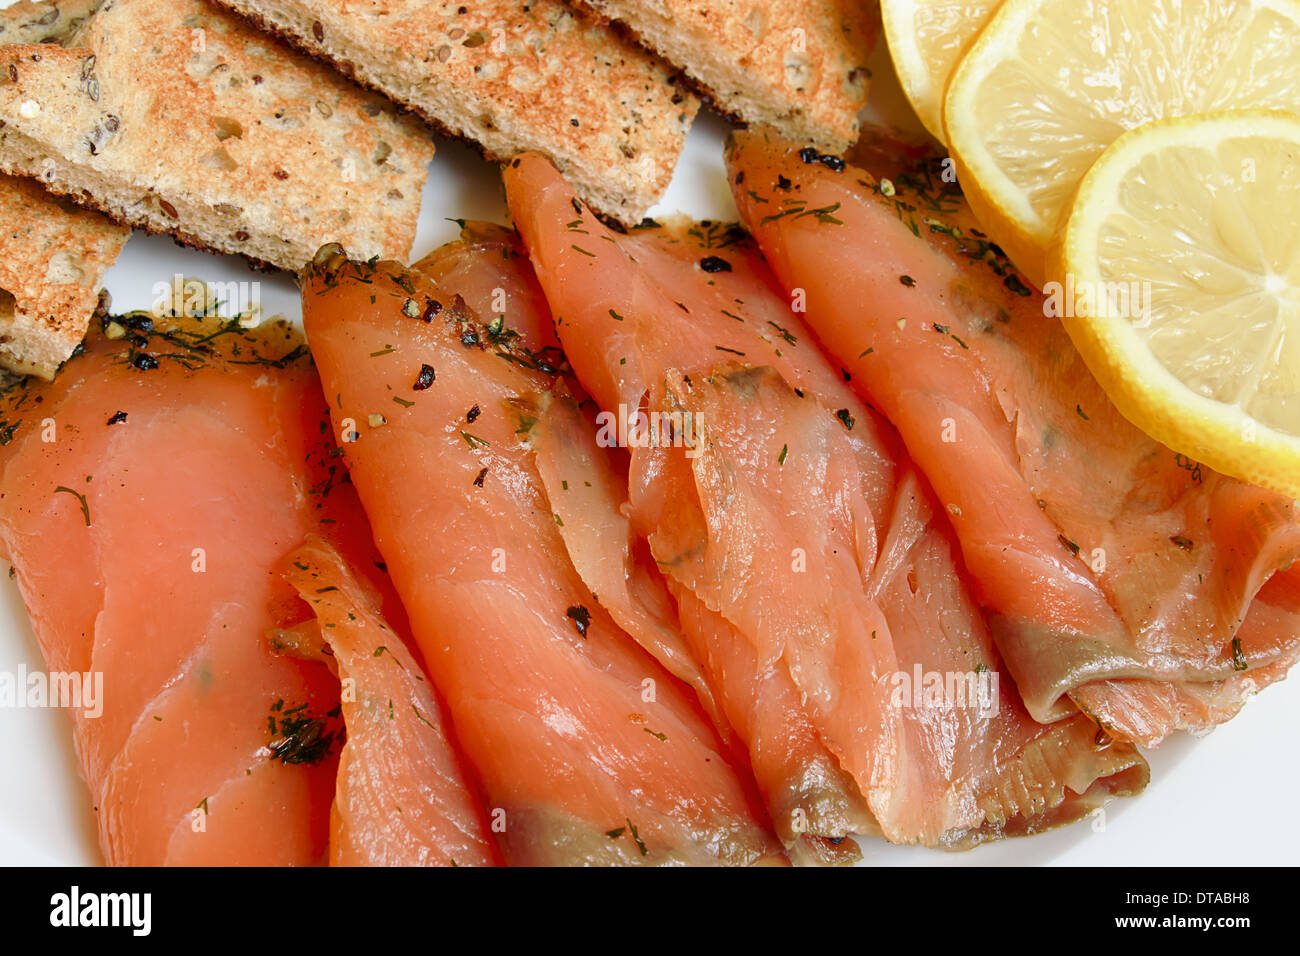 Smoked salmon sliced and arranged with toast a popular appetizer - Stock Image